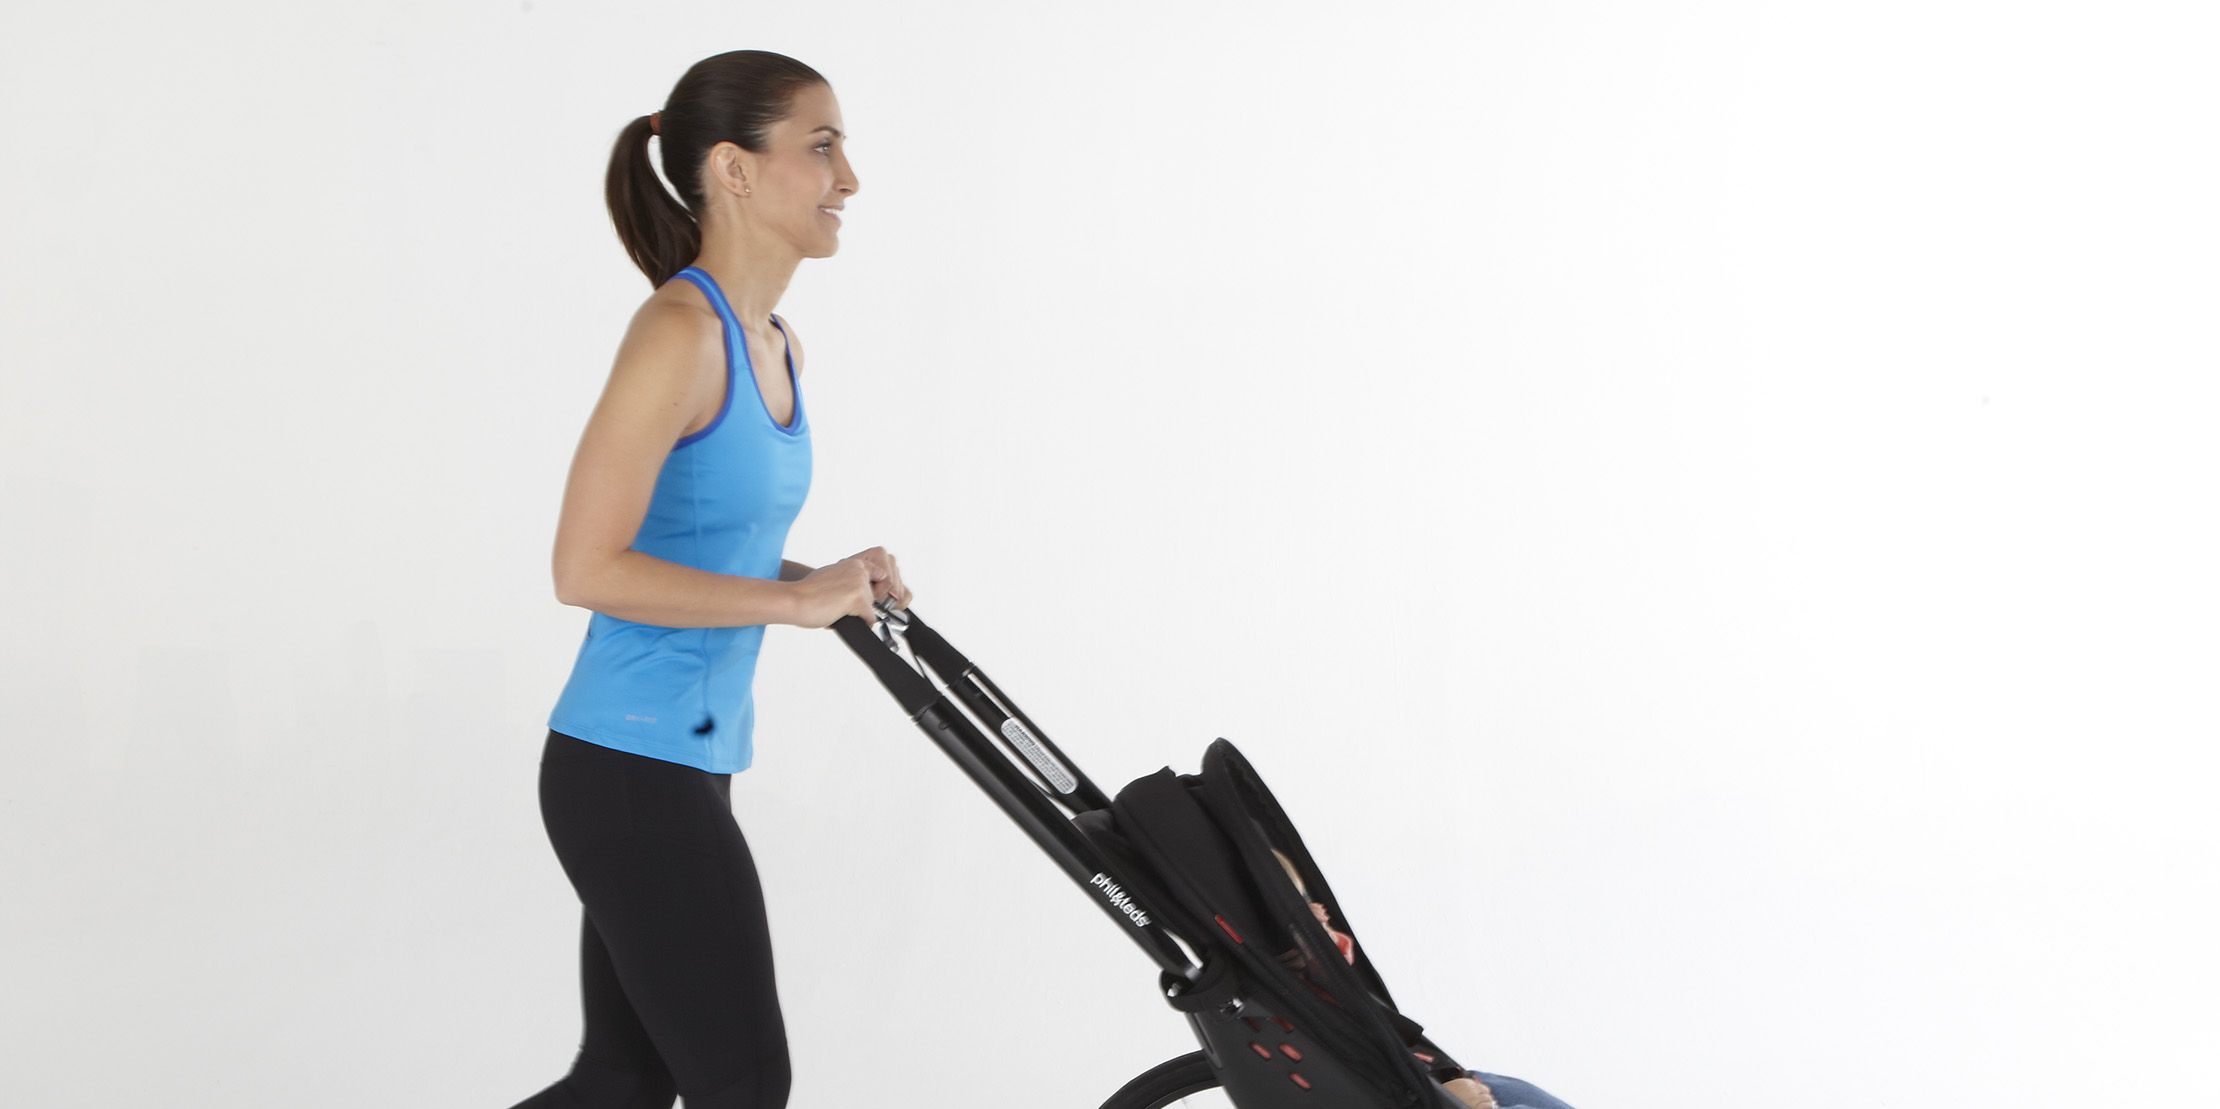 woman pushing jogging stroller